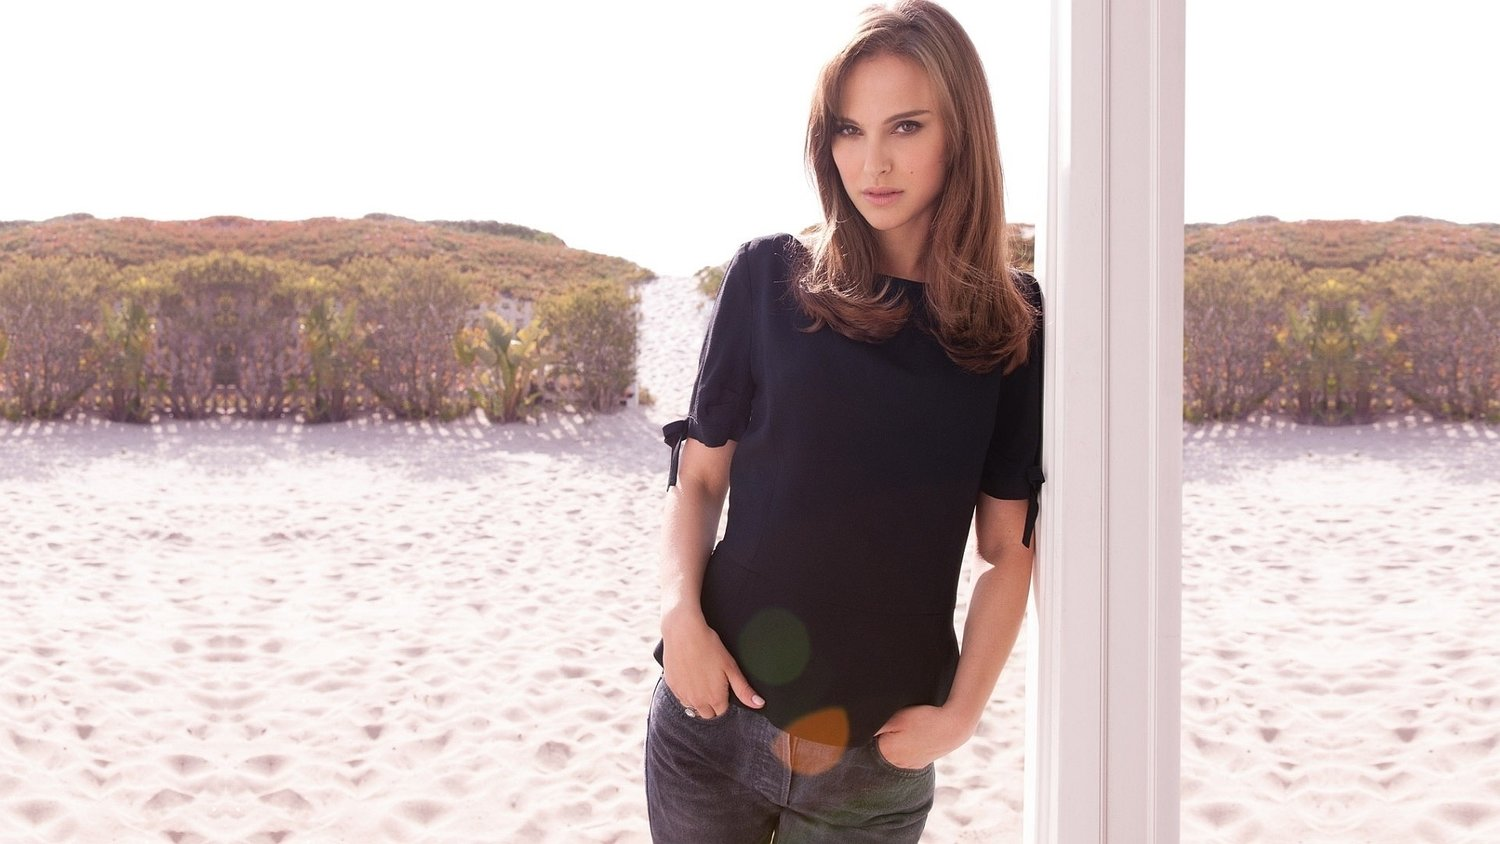 Natalie Portman May Star in Ridley Scott's Getty Kidnapping Drama ALL THE MONEY IN THE WORLD